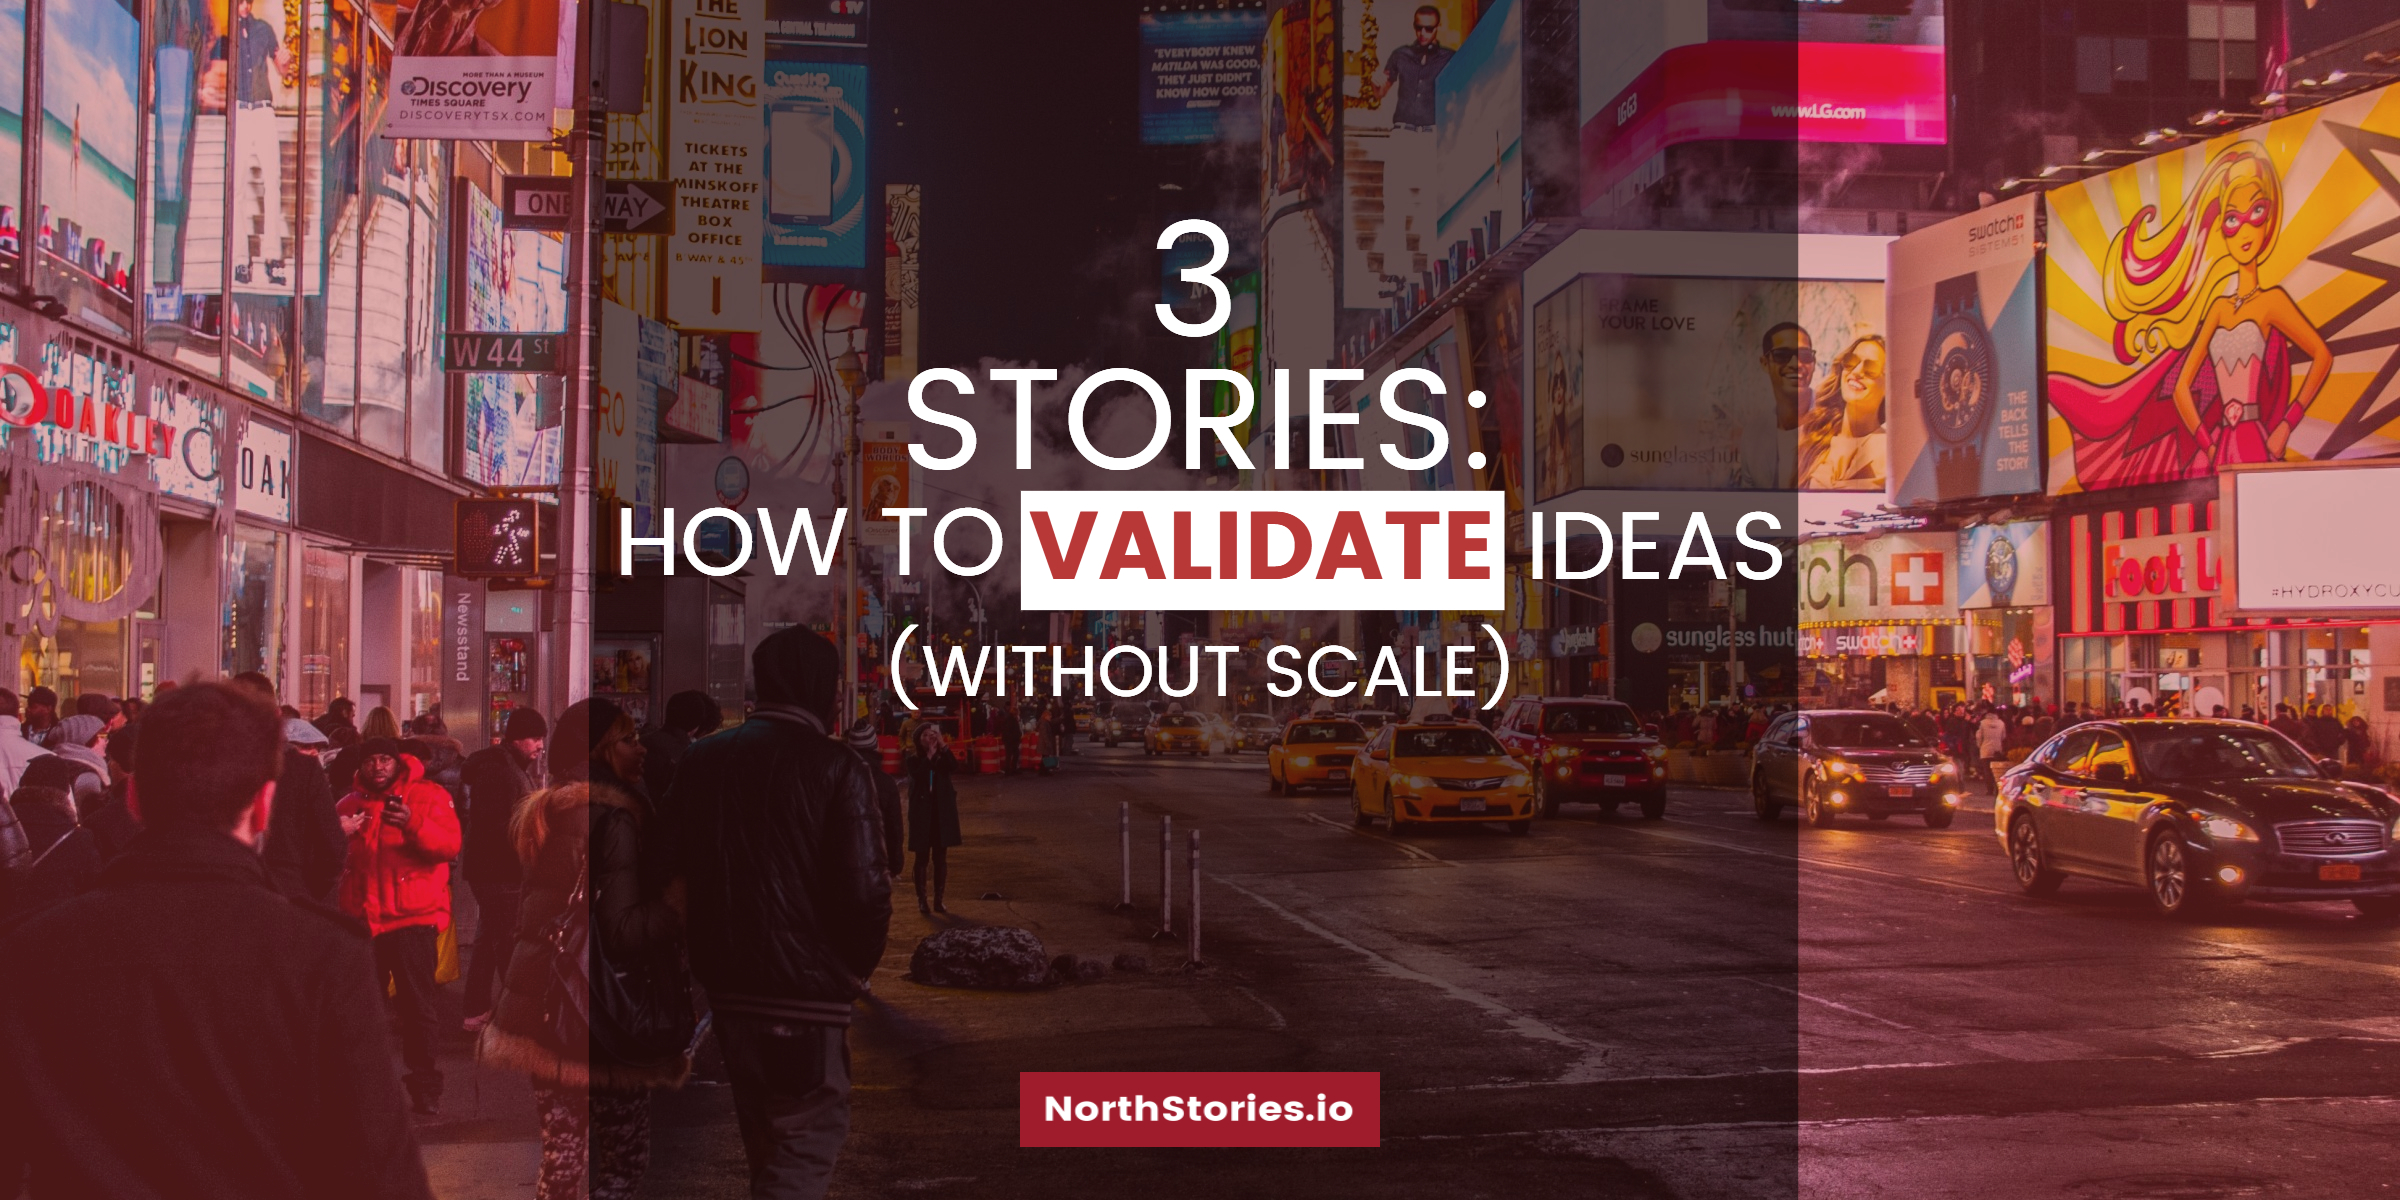 3 Stories: How to Validate Ideas (Without Scale)